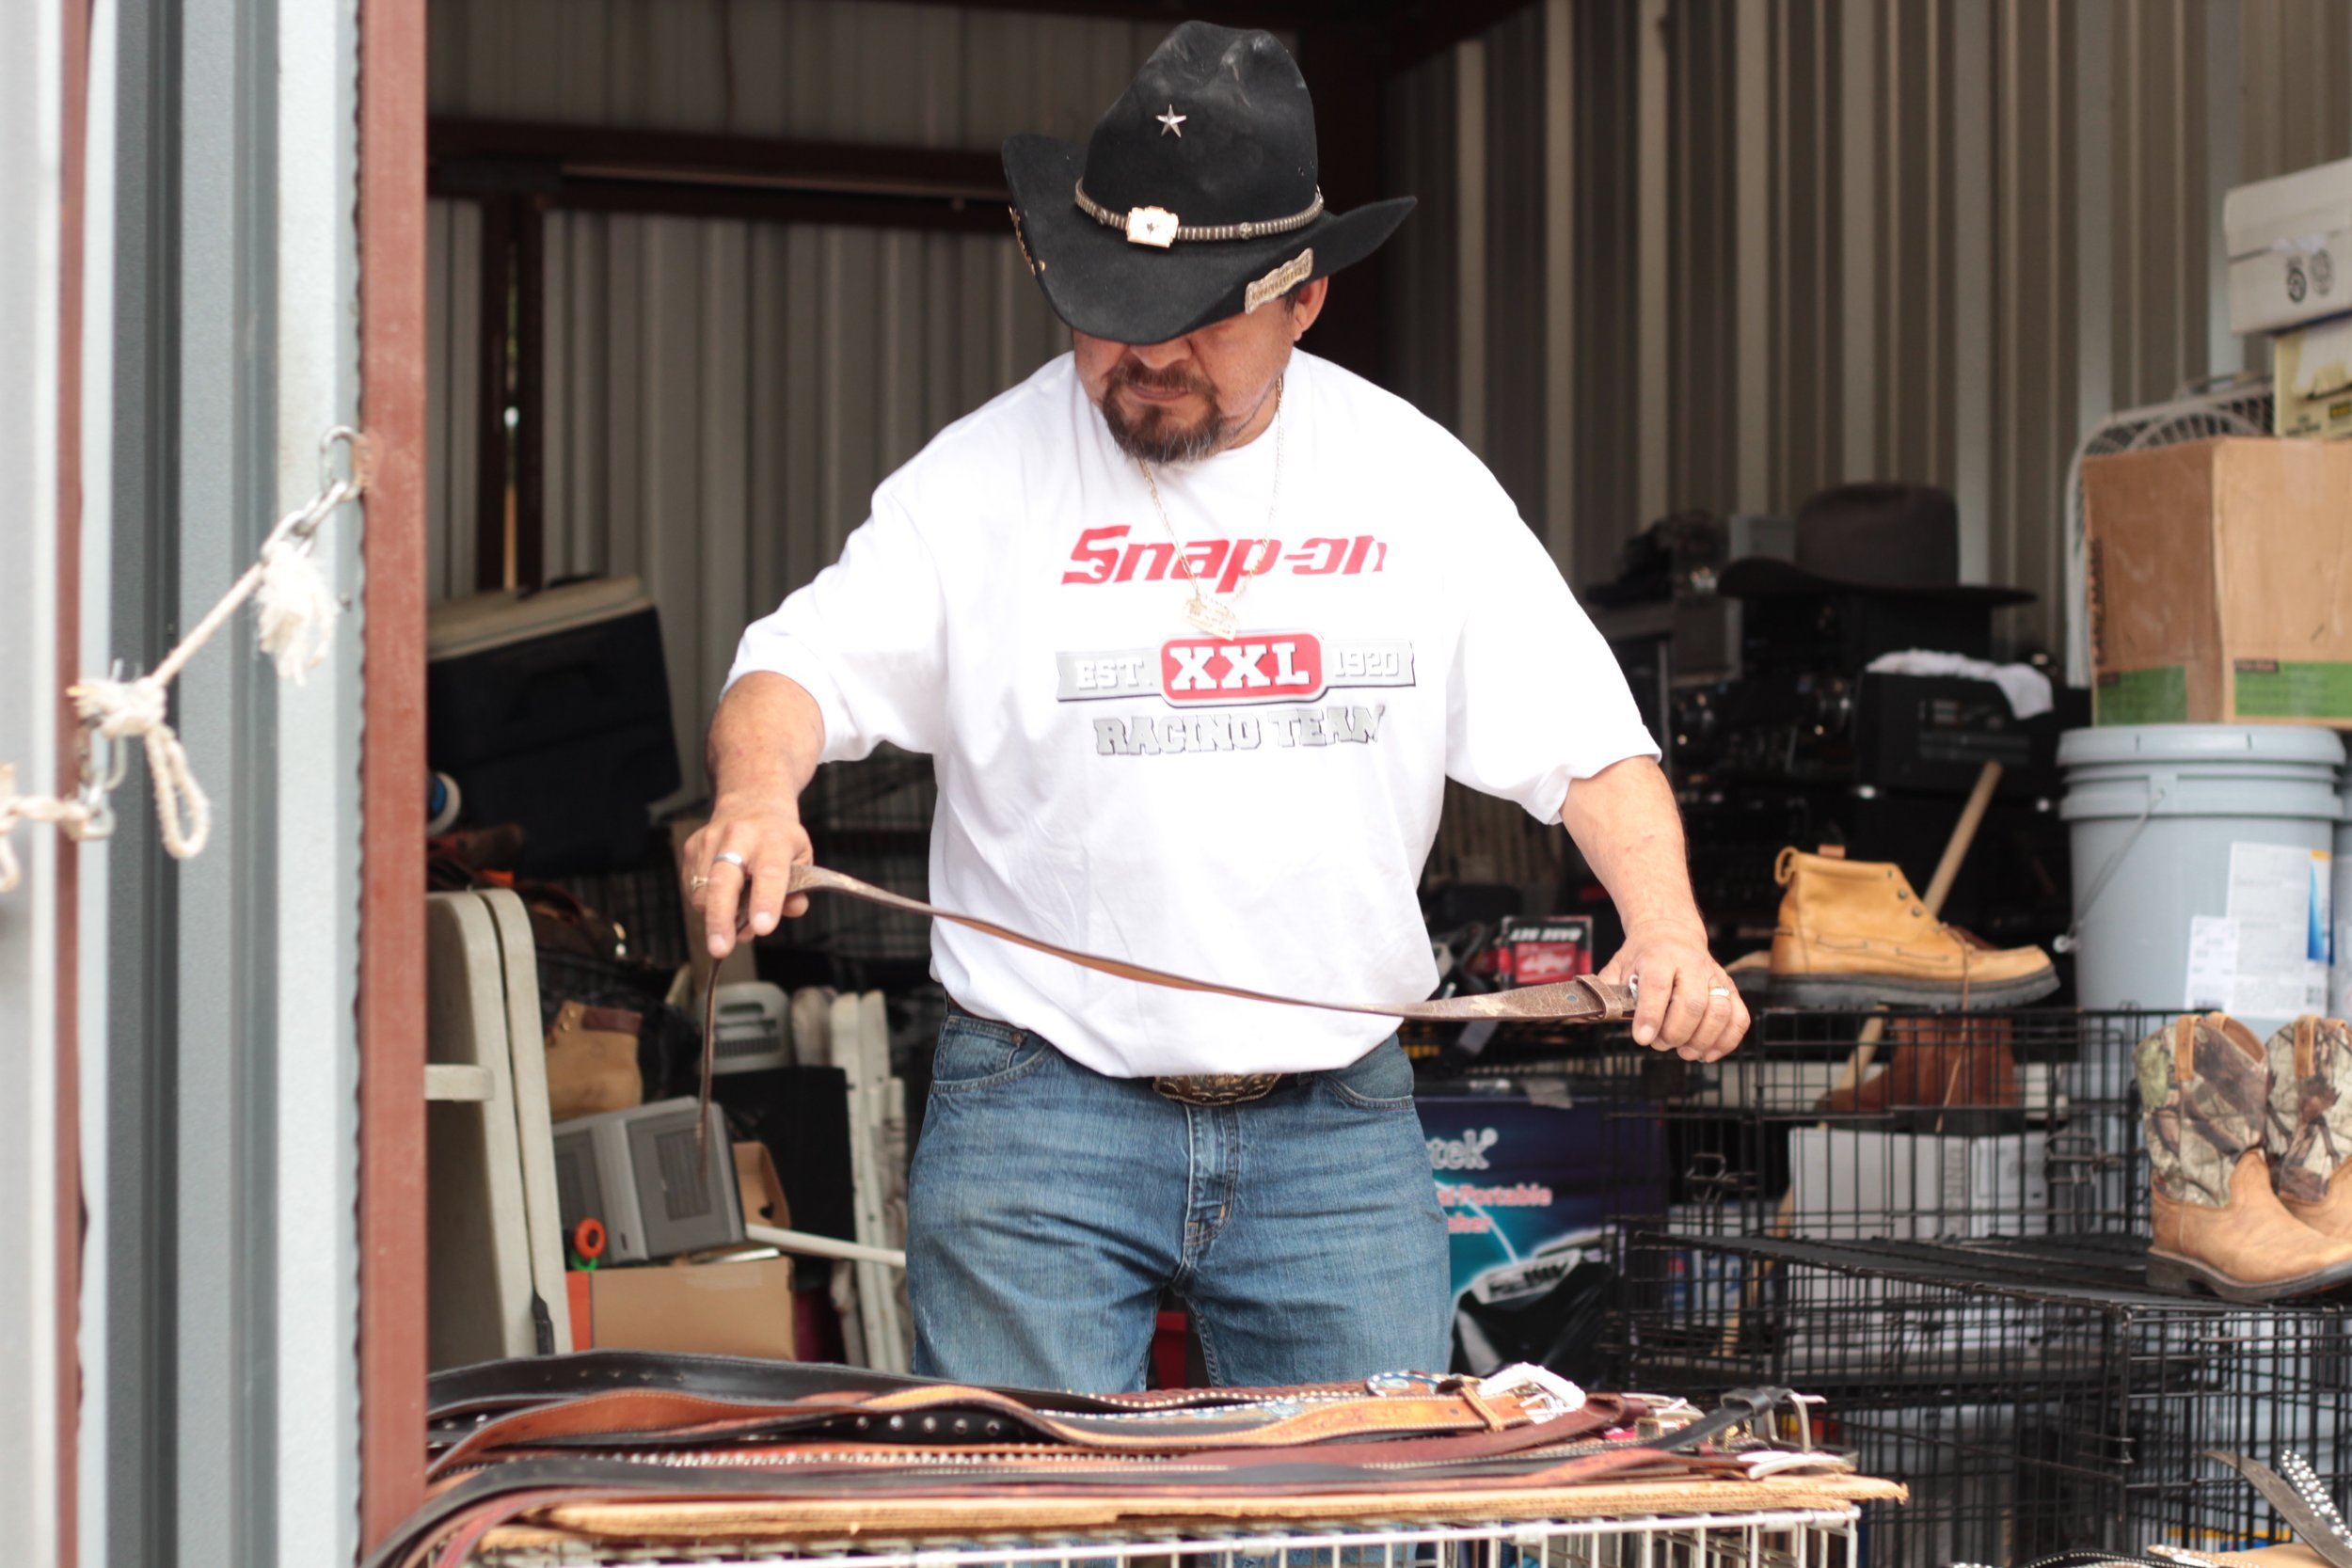 Vendor Ricardo lays out leather belts before he opens for business at the 812 Market.